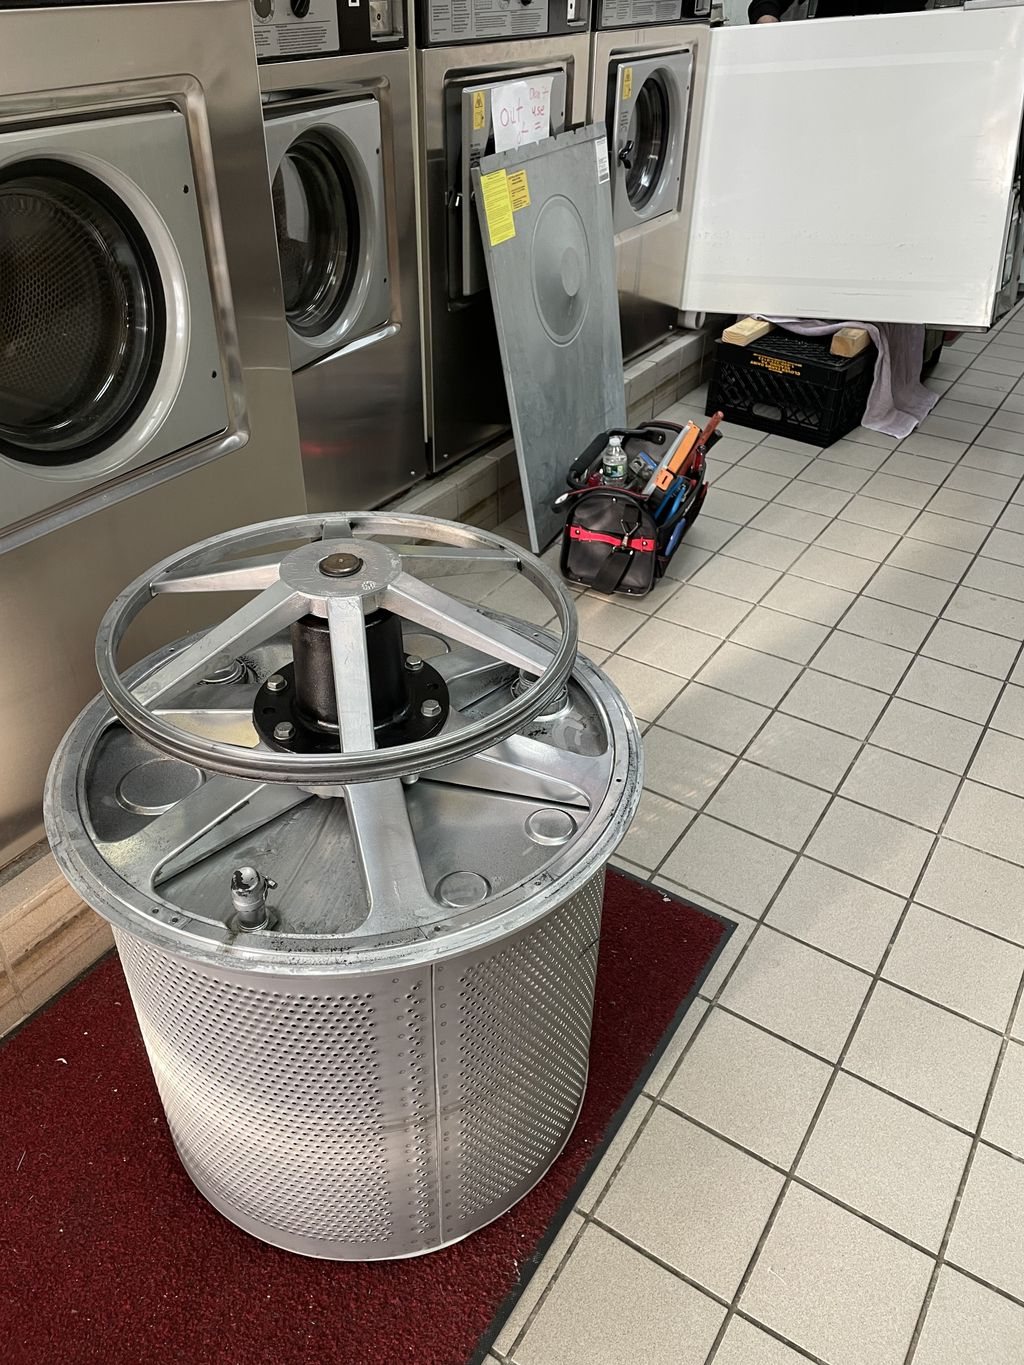 Bearing job on the washer